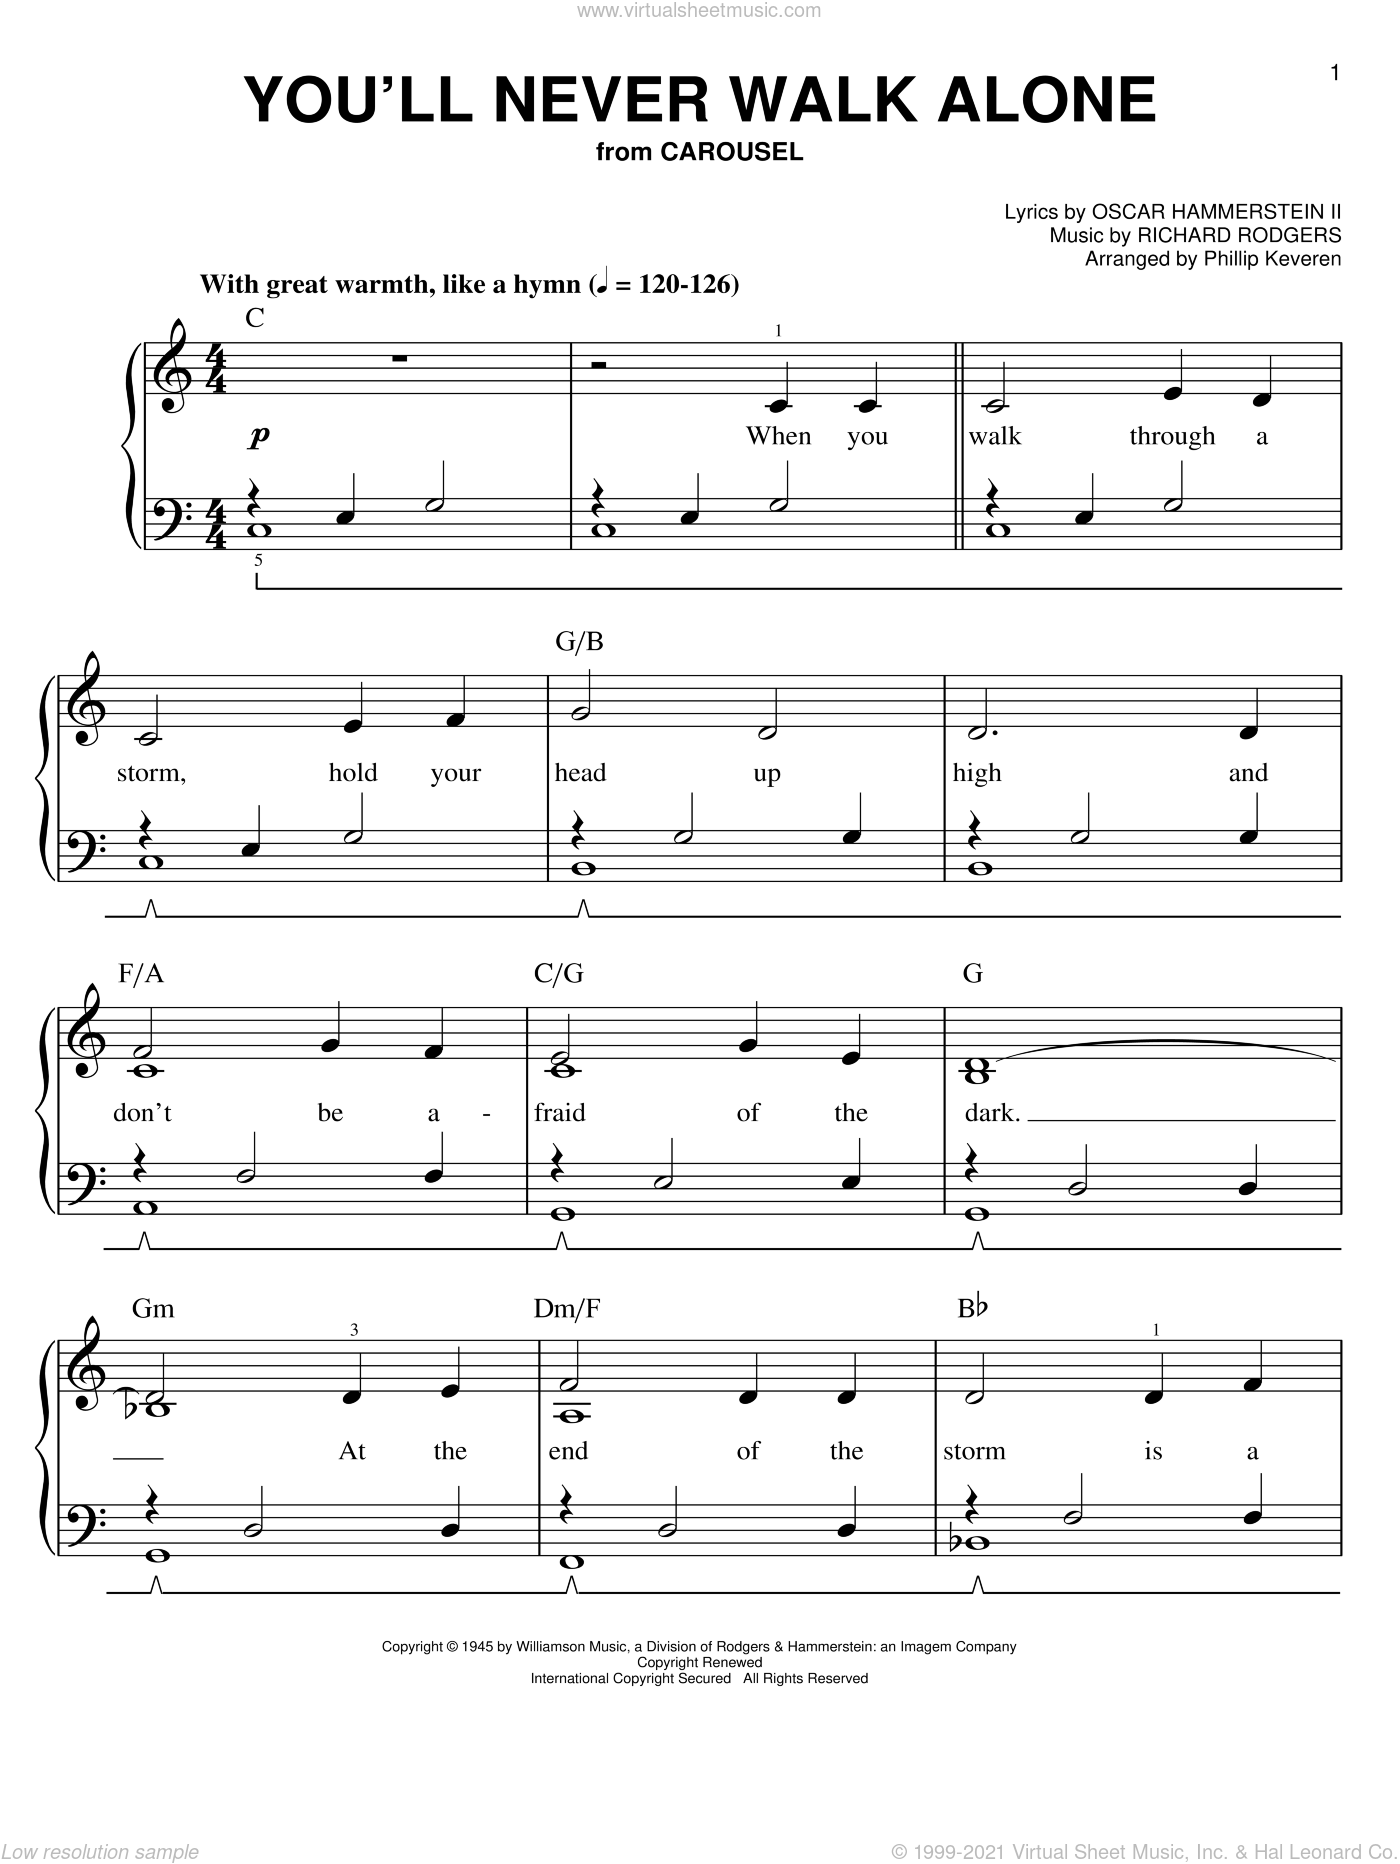 You'll Never Walk Alone sheet music for piano solo by Richard Rodgers, Oscar II Hammerstein and Phillip Keveren, easy skill level